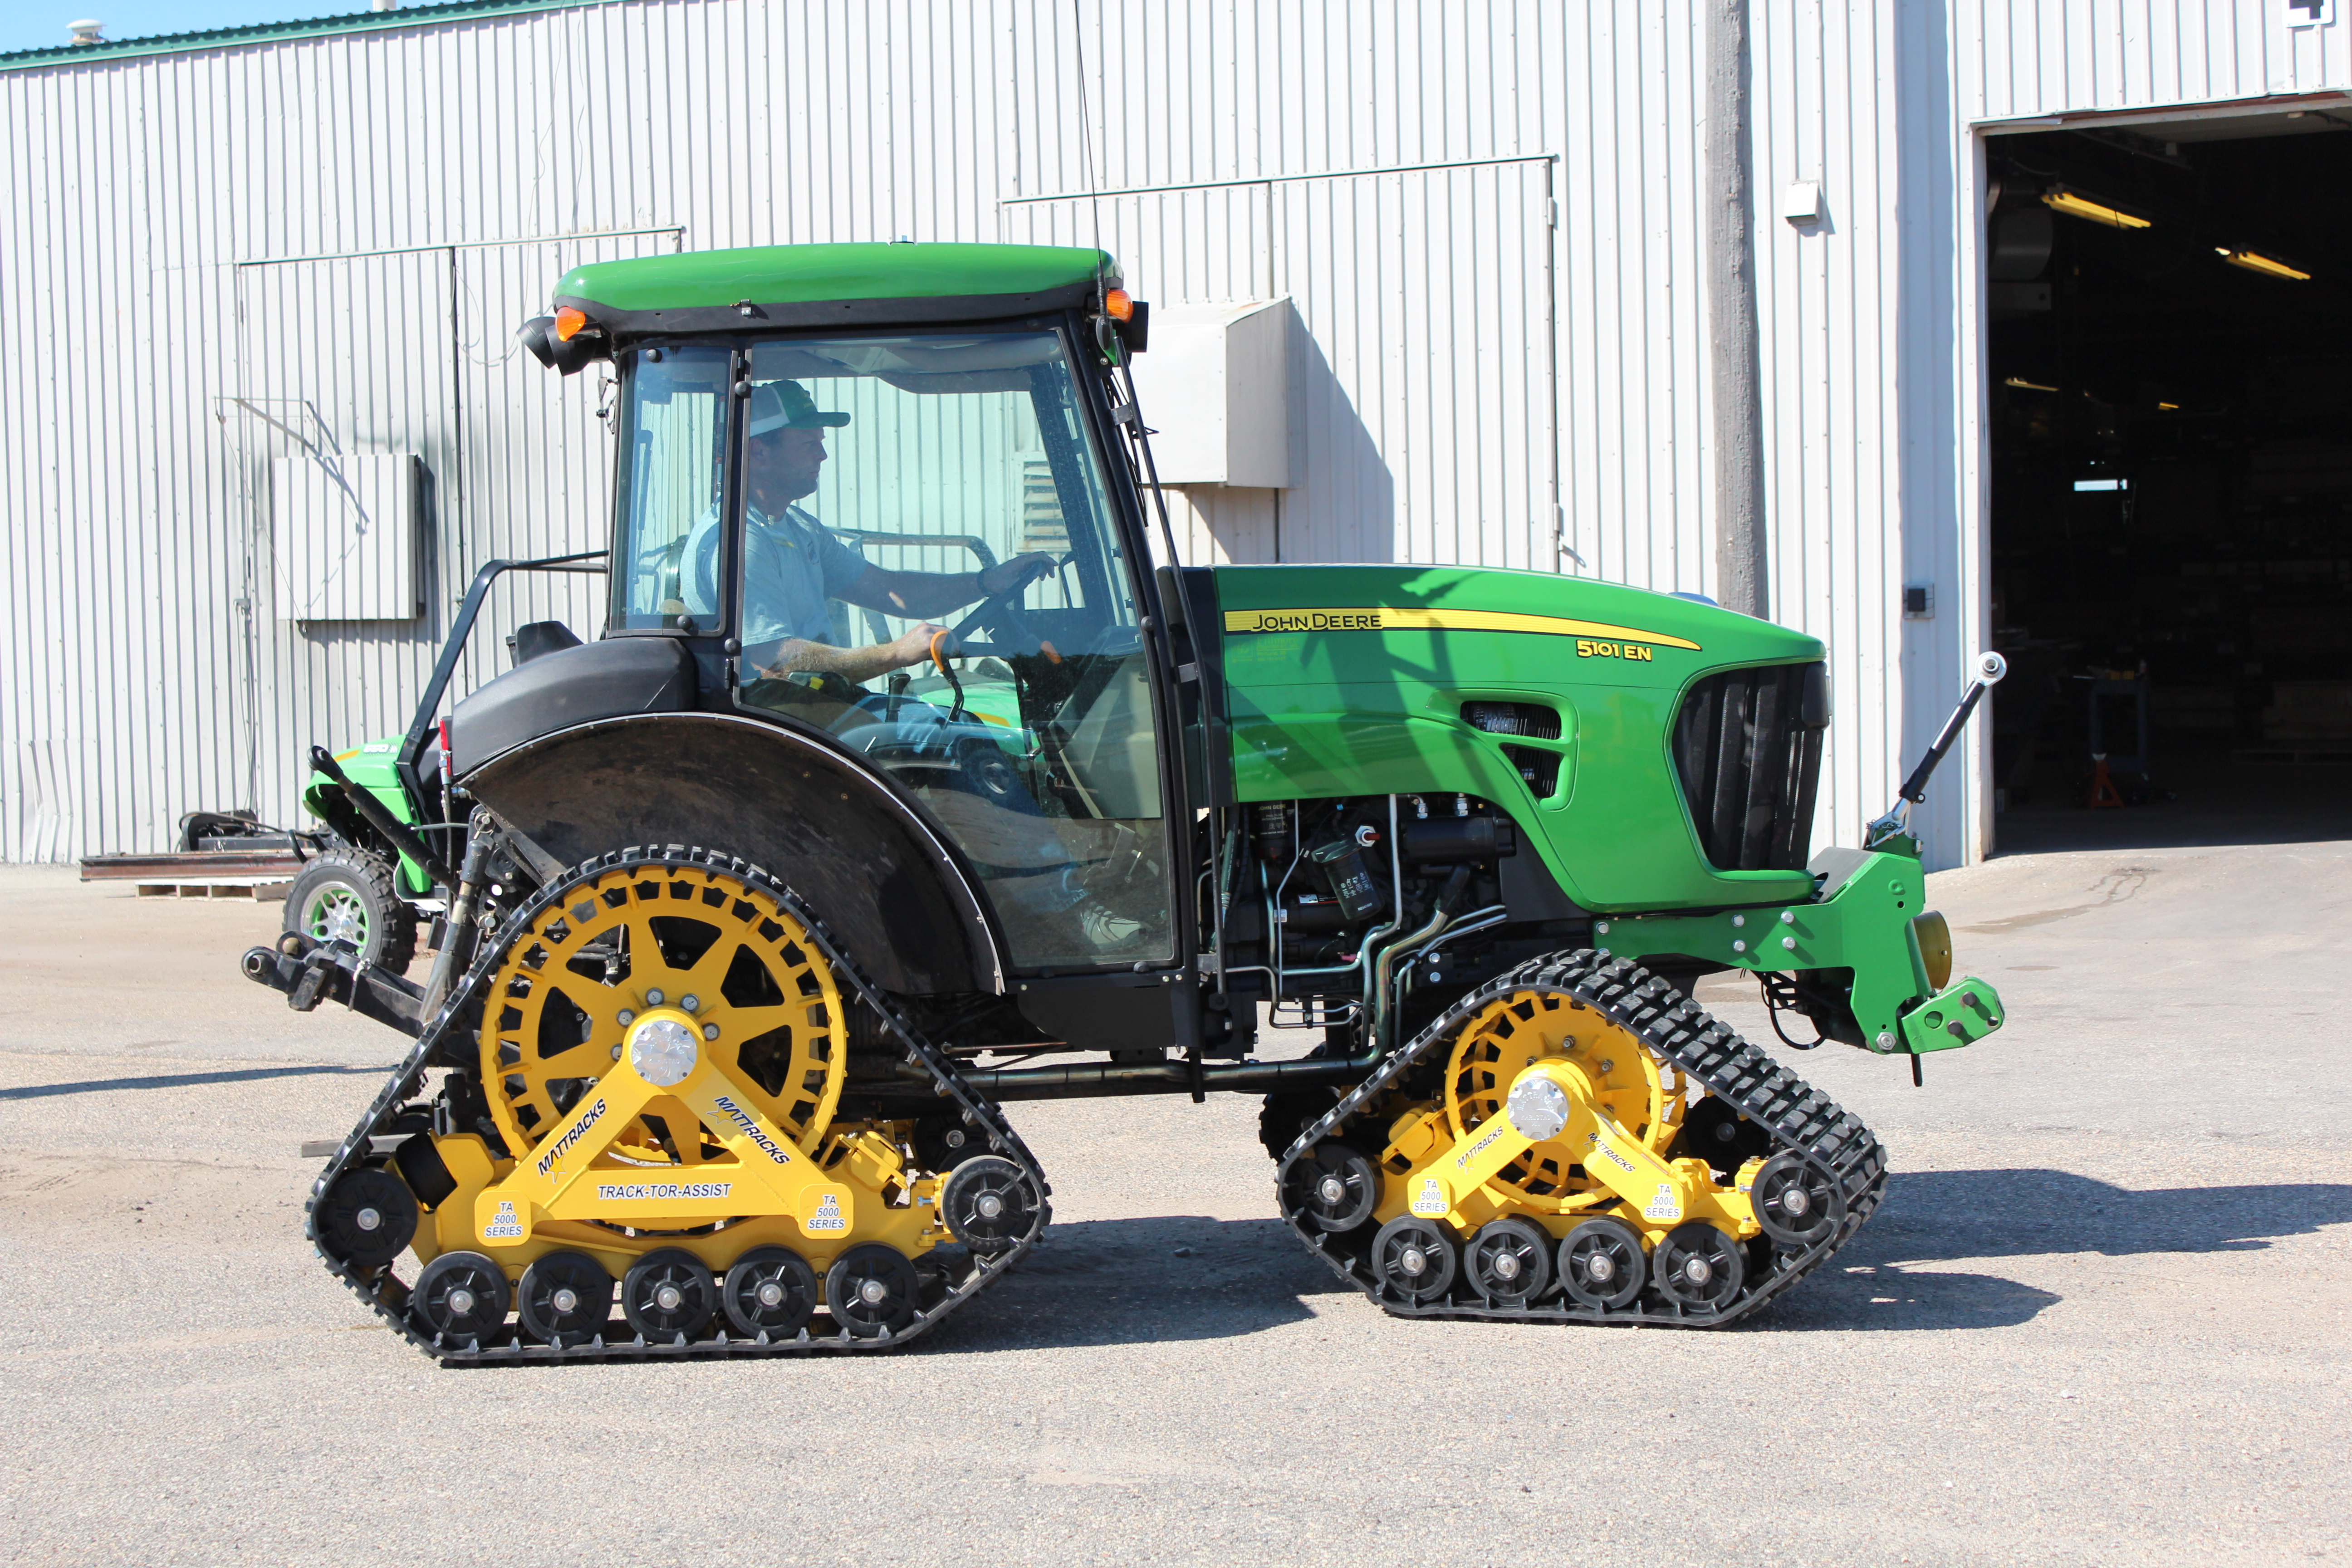 Used Mattracks For Sale >> Product Spotlight: Rubber Tracks and Track Conversion Systems | Farmers Hot Line